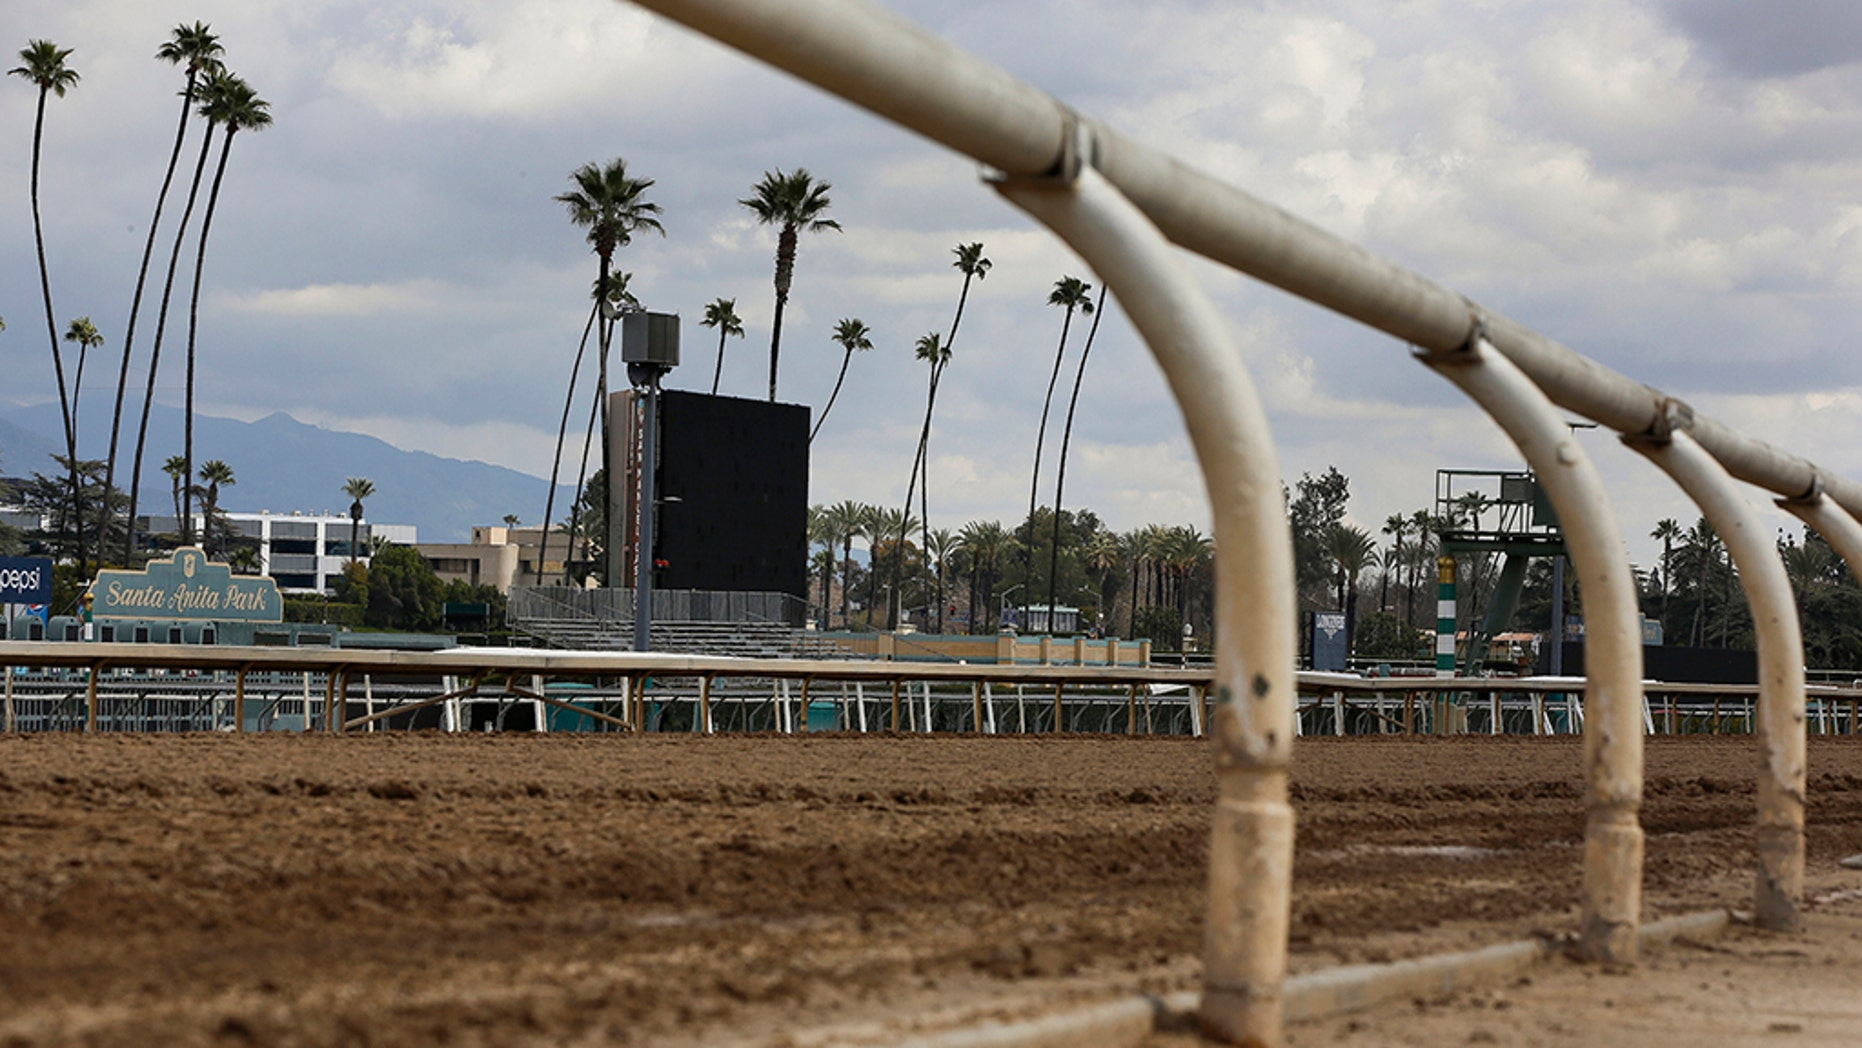 California Track S Alarming Spate Of Horse Deaths Prompts